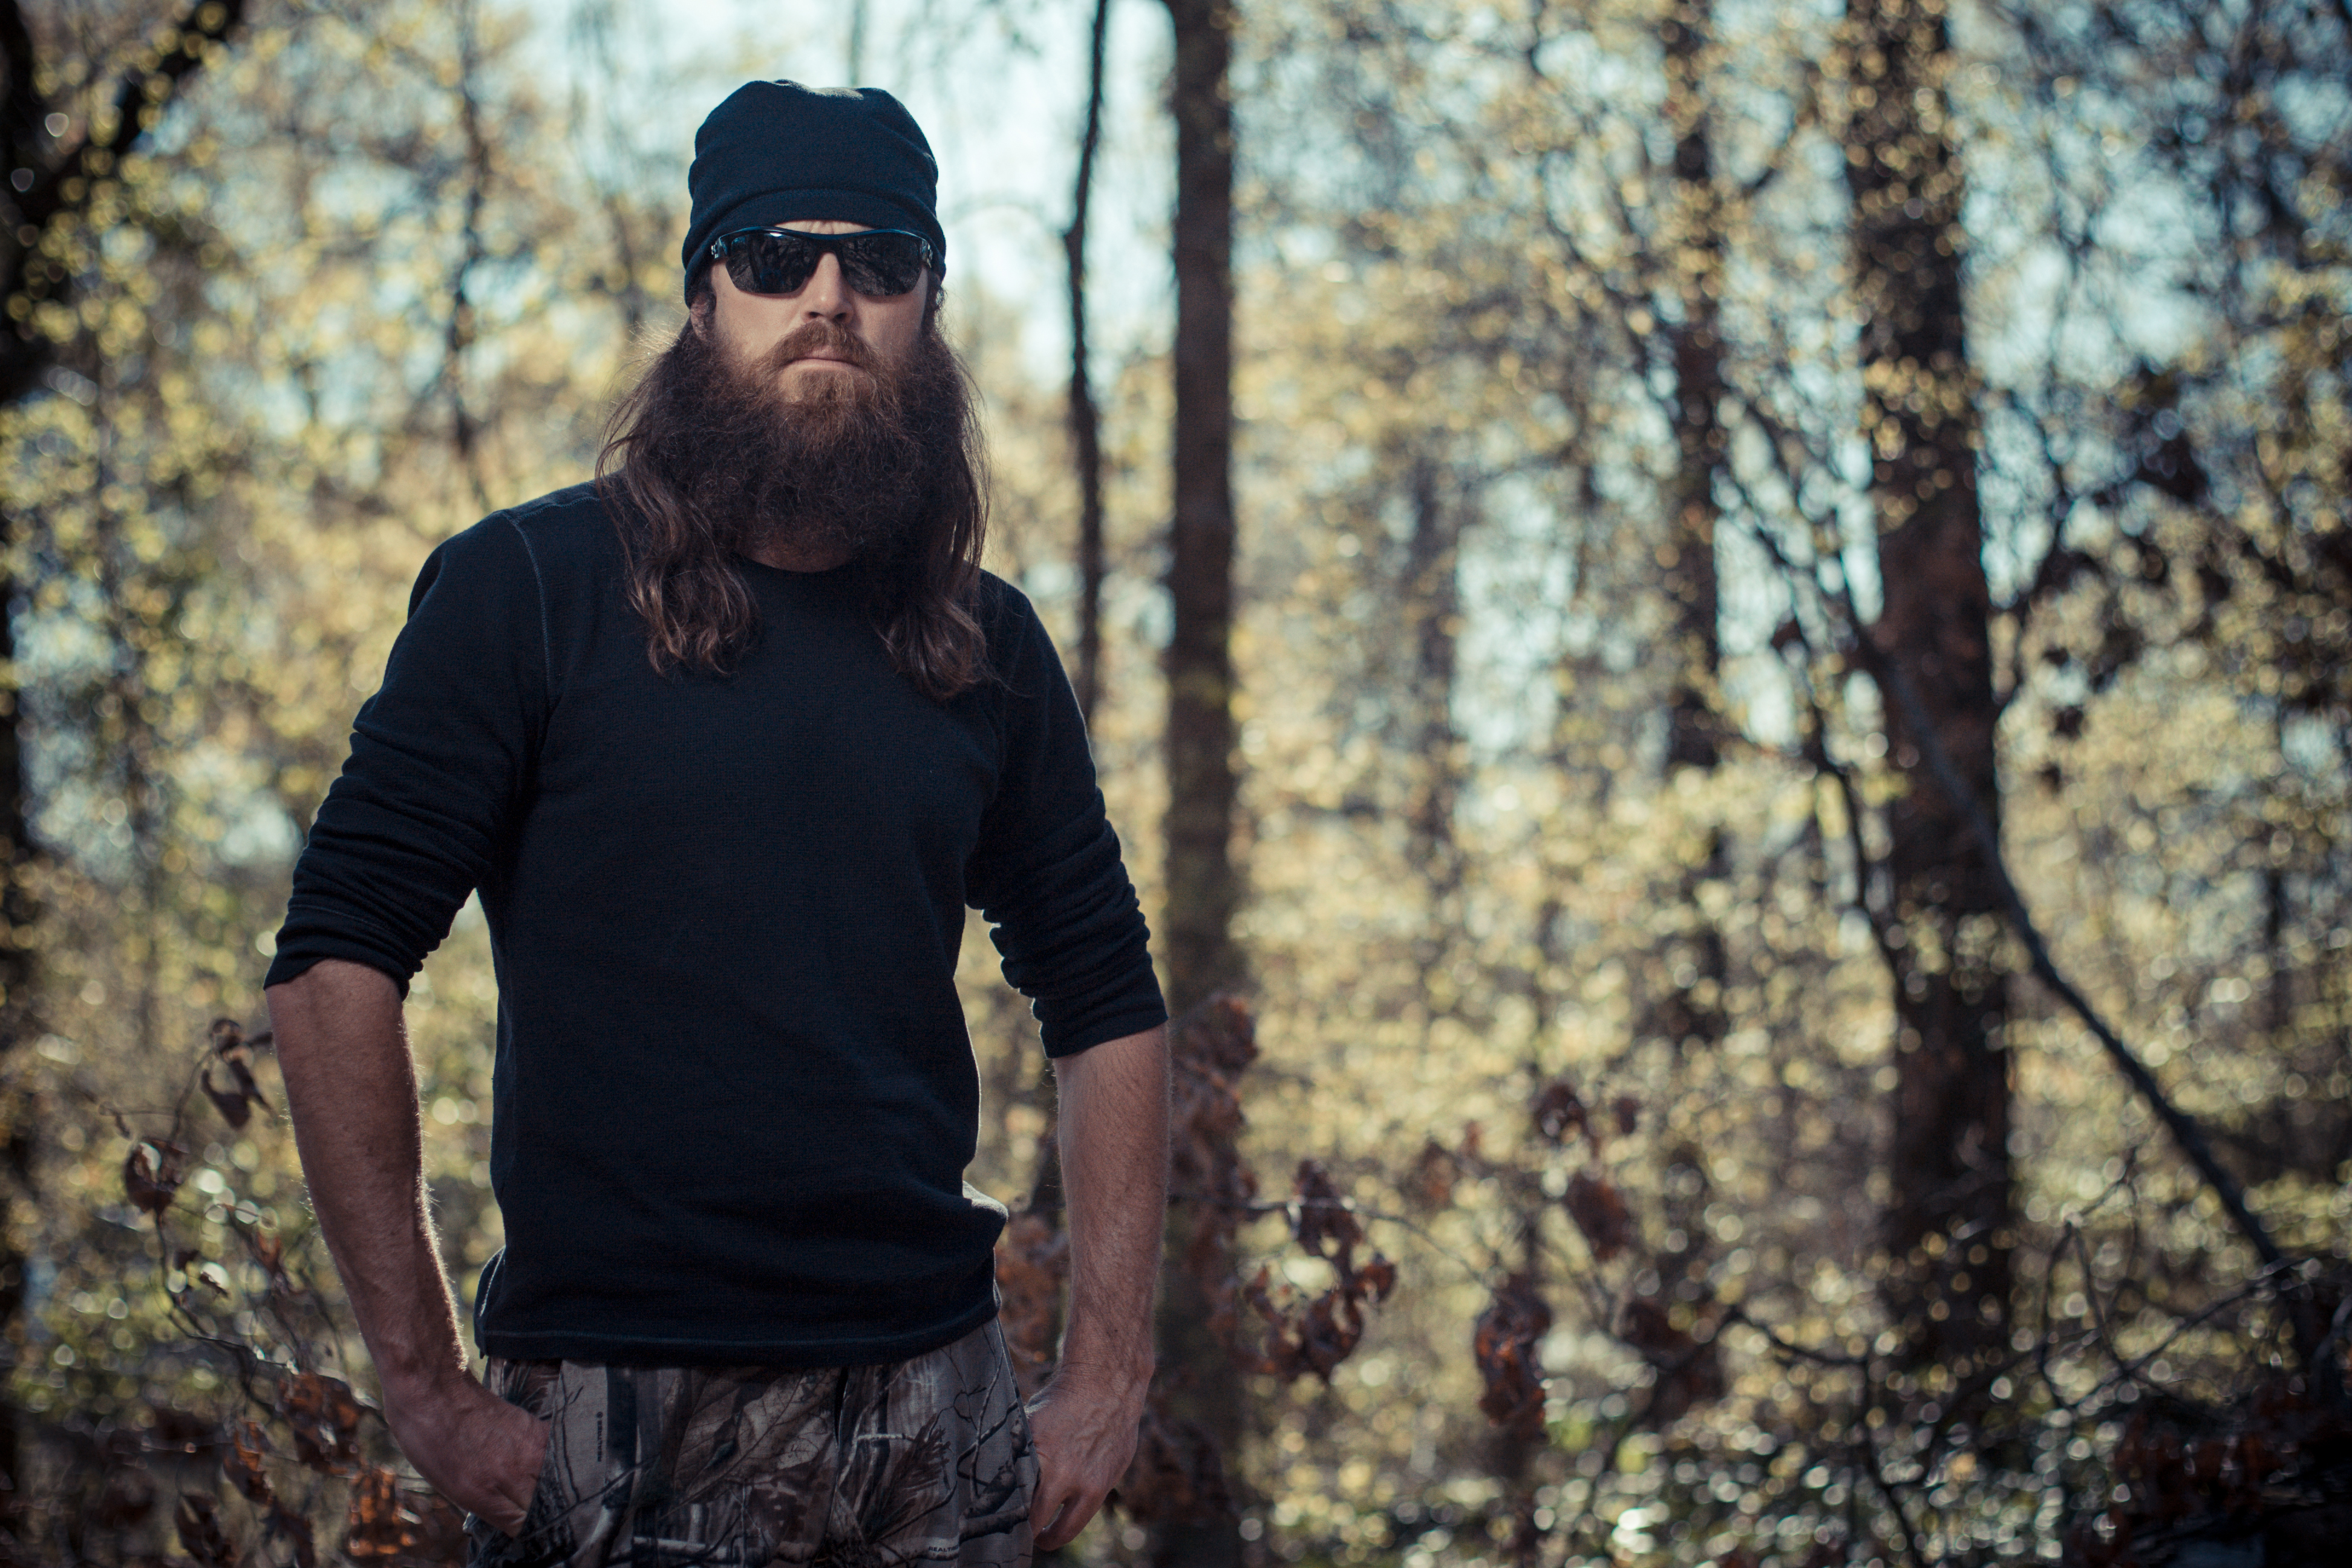 'Beards and Babies:' Duck Dynasty's Jase Robertson is the featured speaker for Lewiston pro-life clinic